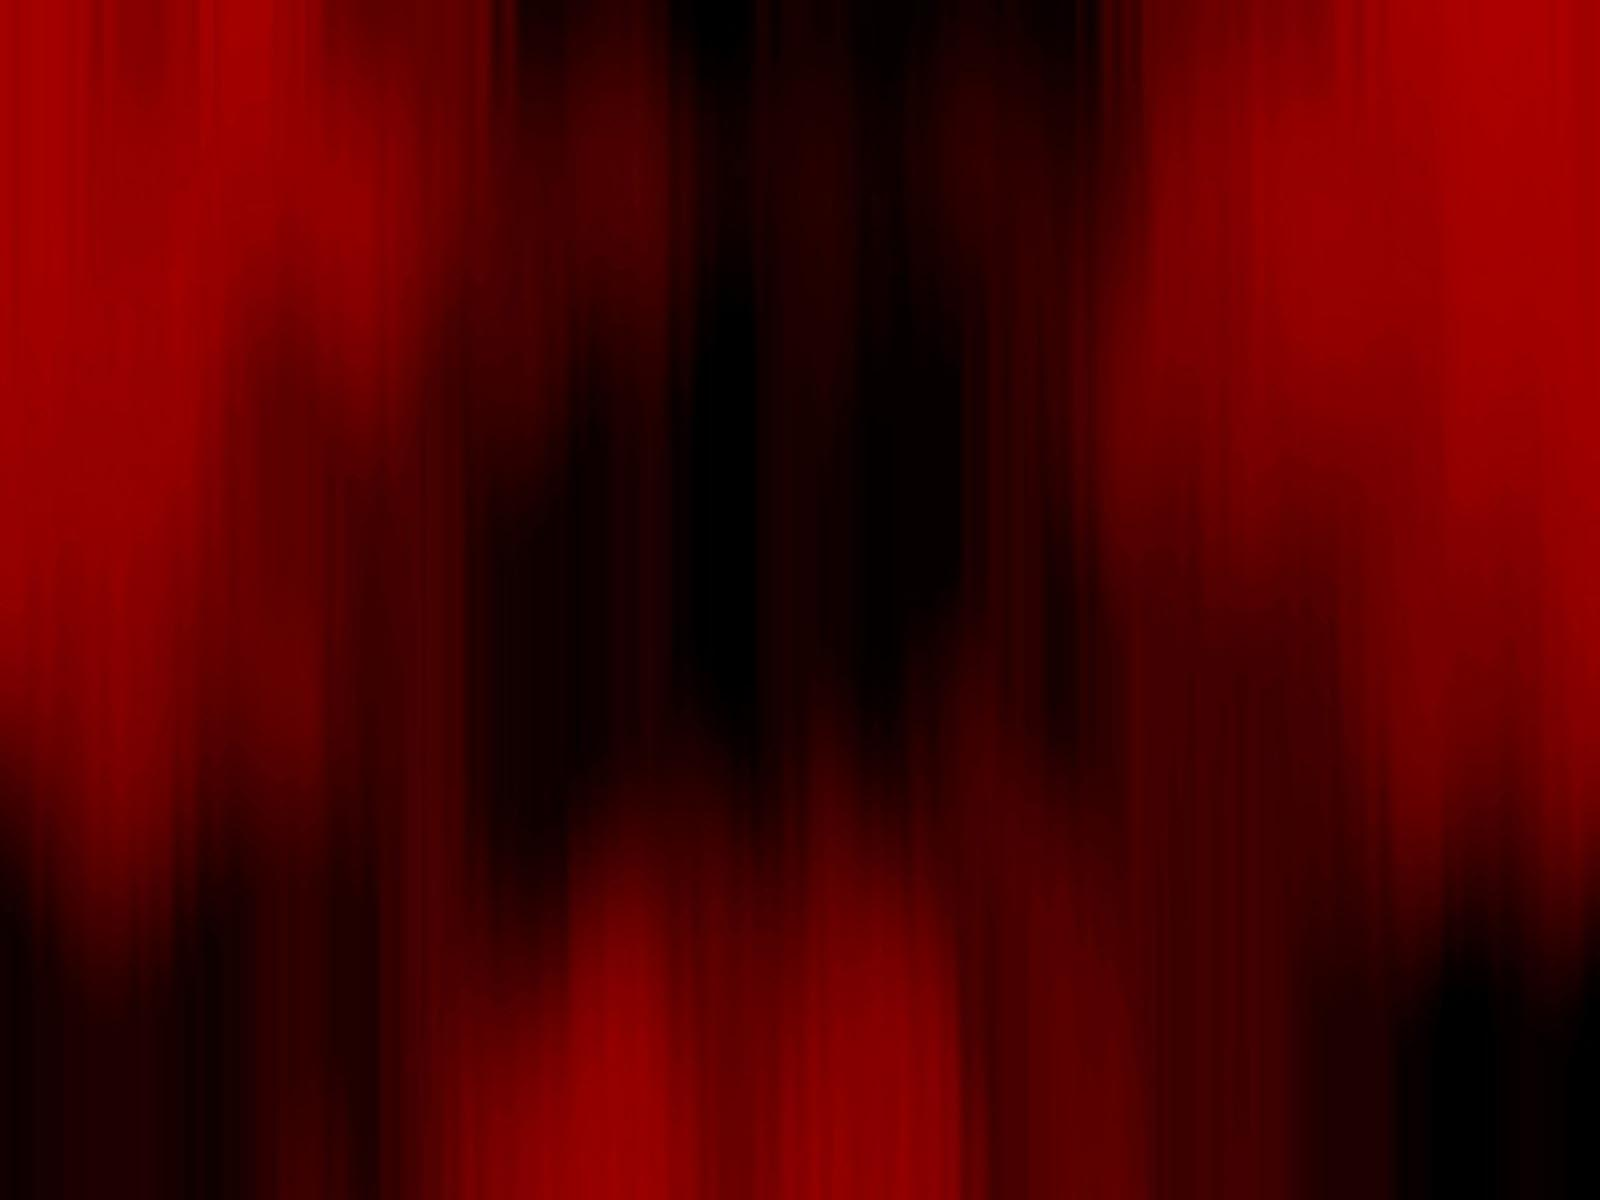 Streaky Black and Red Wallpaper and Backgrounds 1600 x 1200 1600x1200